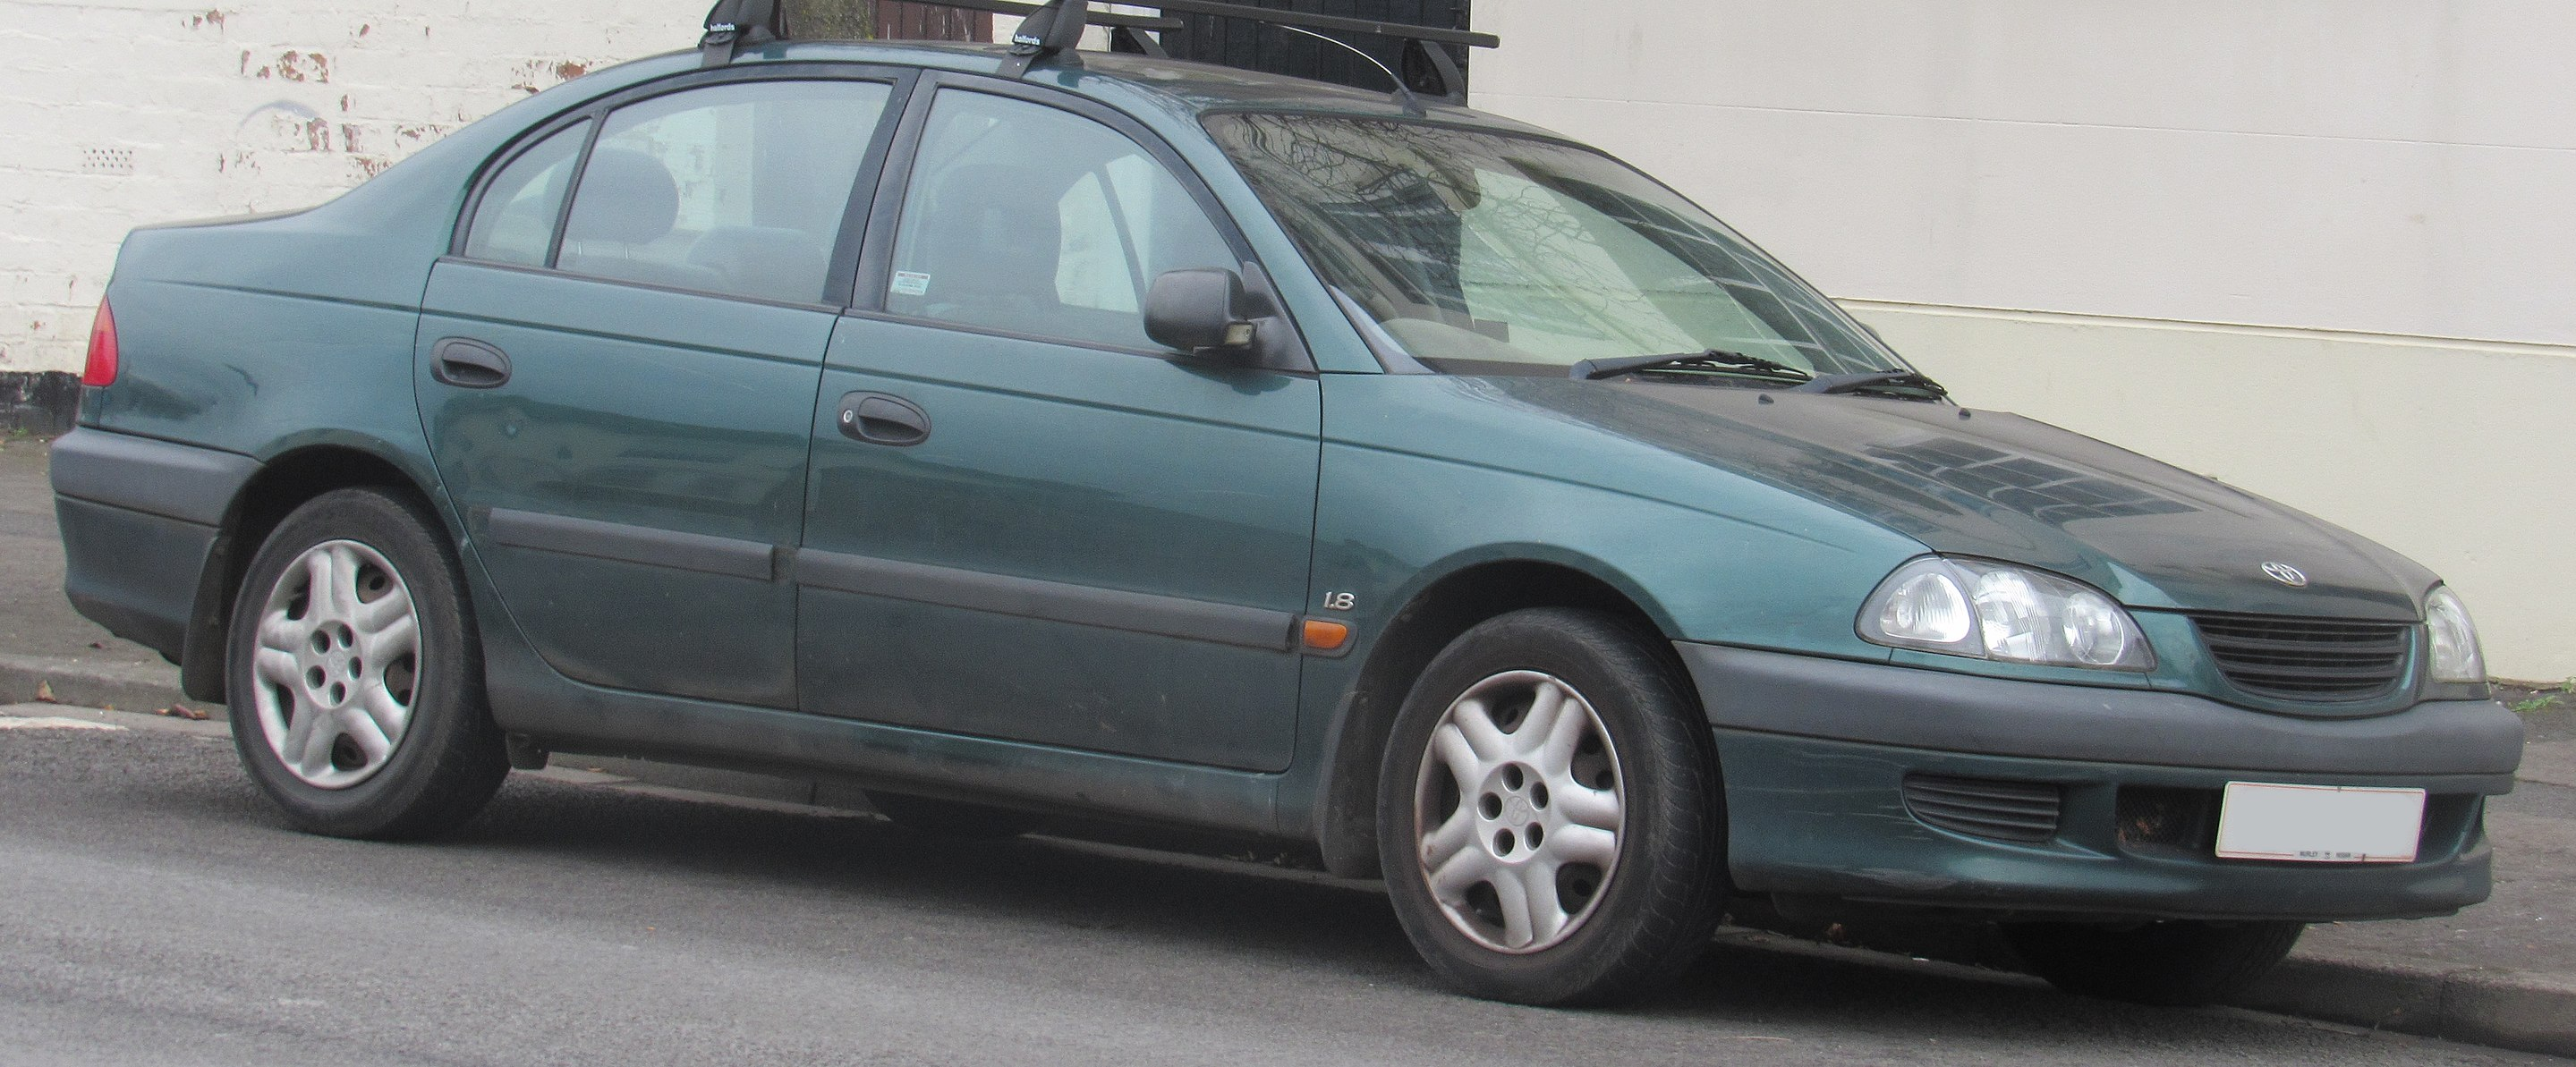 Toyota Avensis (T220)